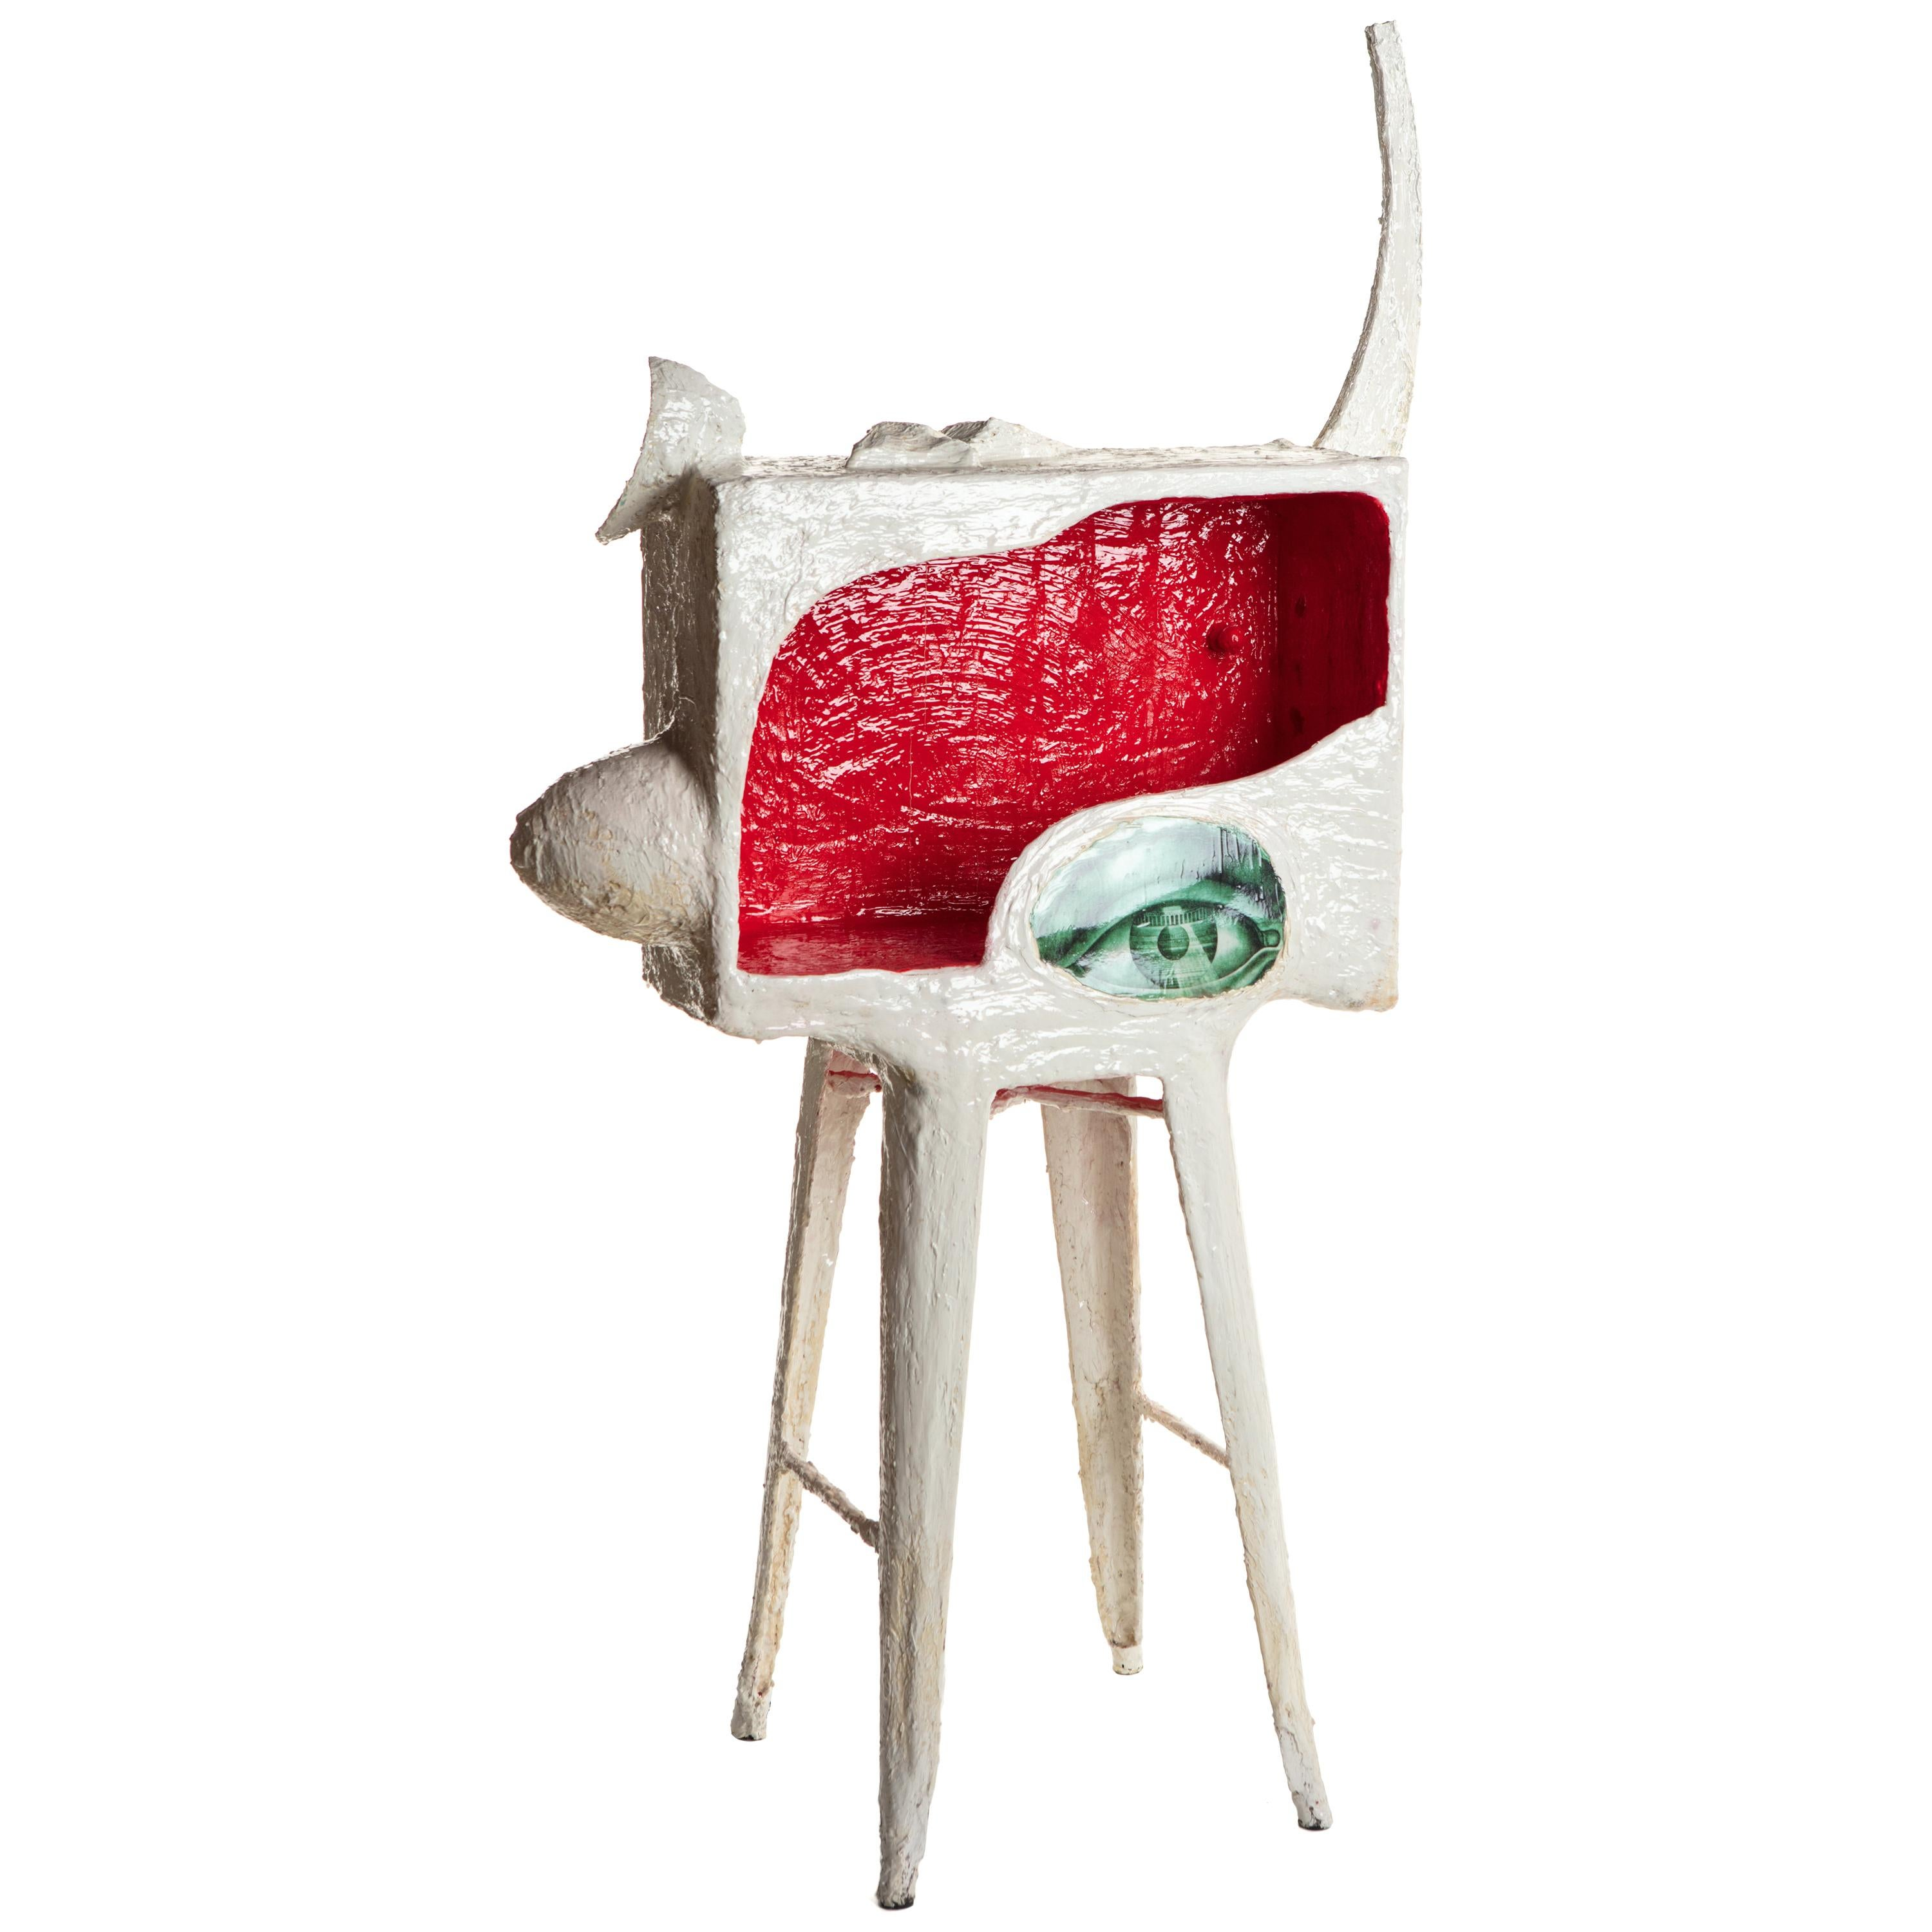 Sculptural White and Red Plaster Bar, 21st Century by Mattia Biagi